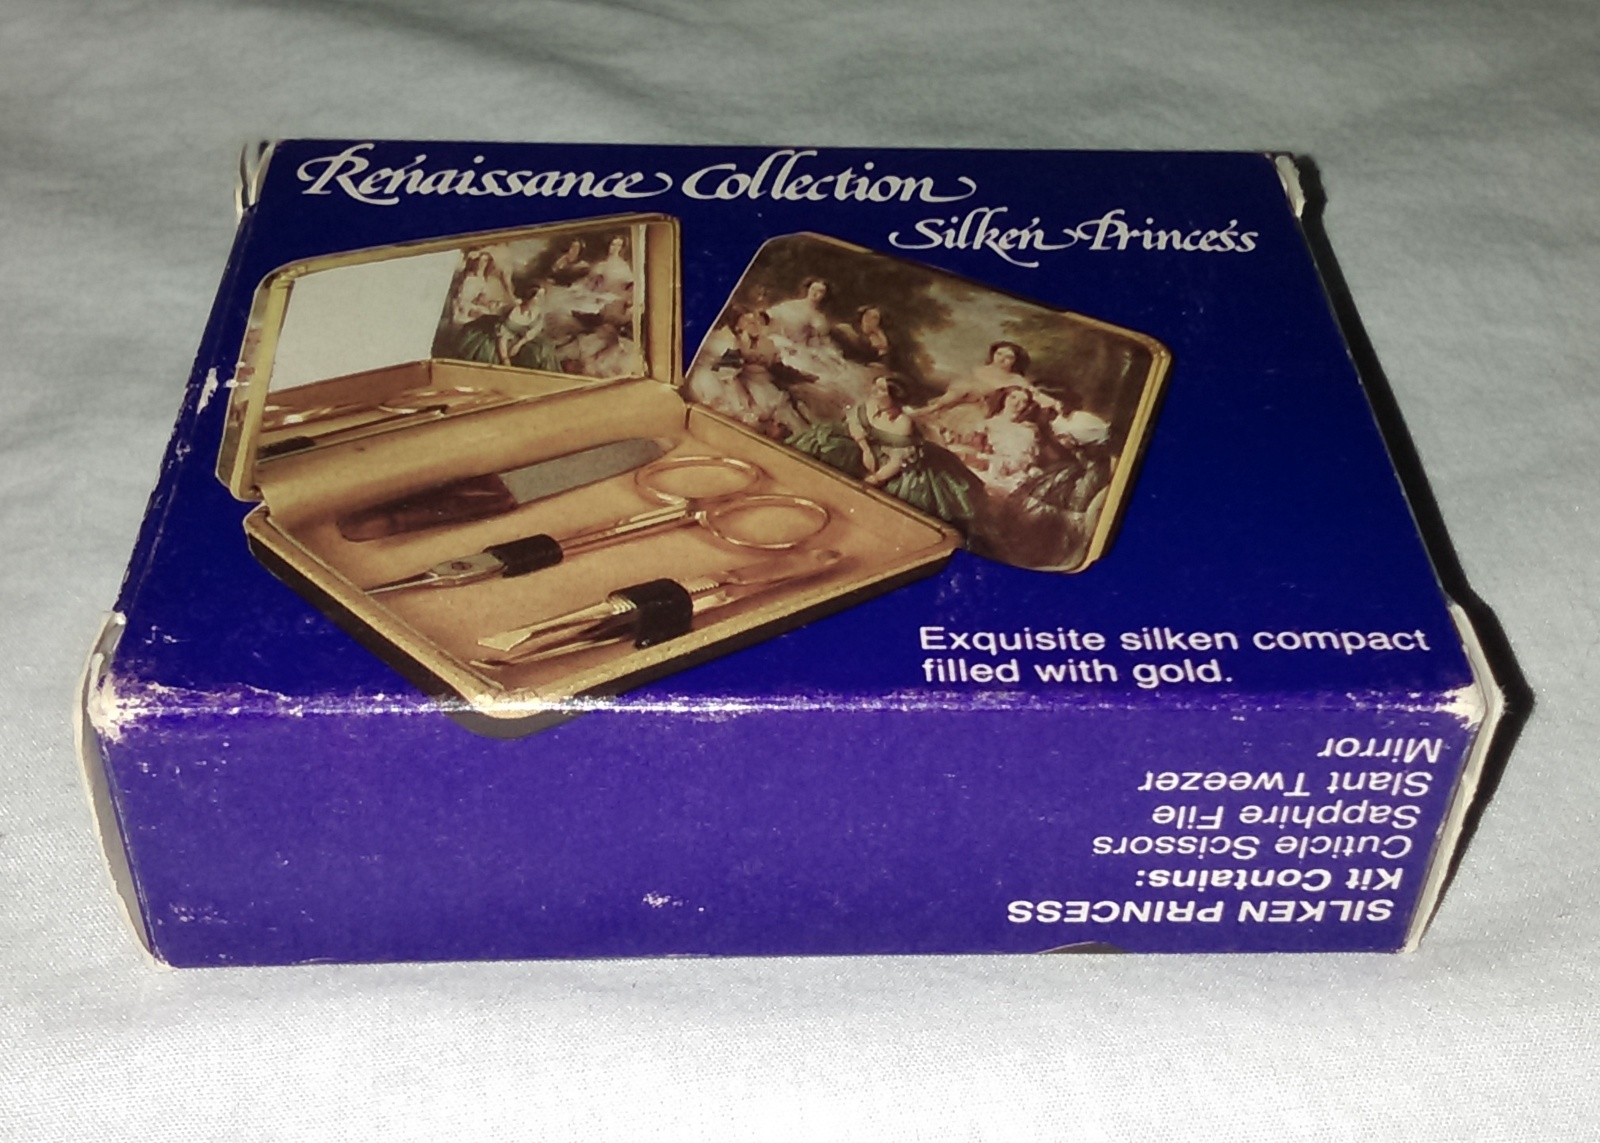 Renaissance Collection Silken' Princess Mirror Compact w/Gold Scissors Tweezer